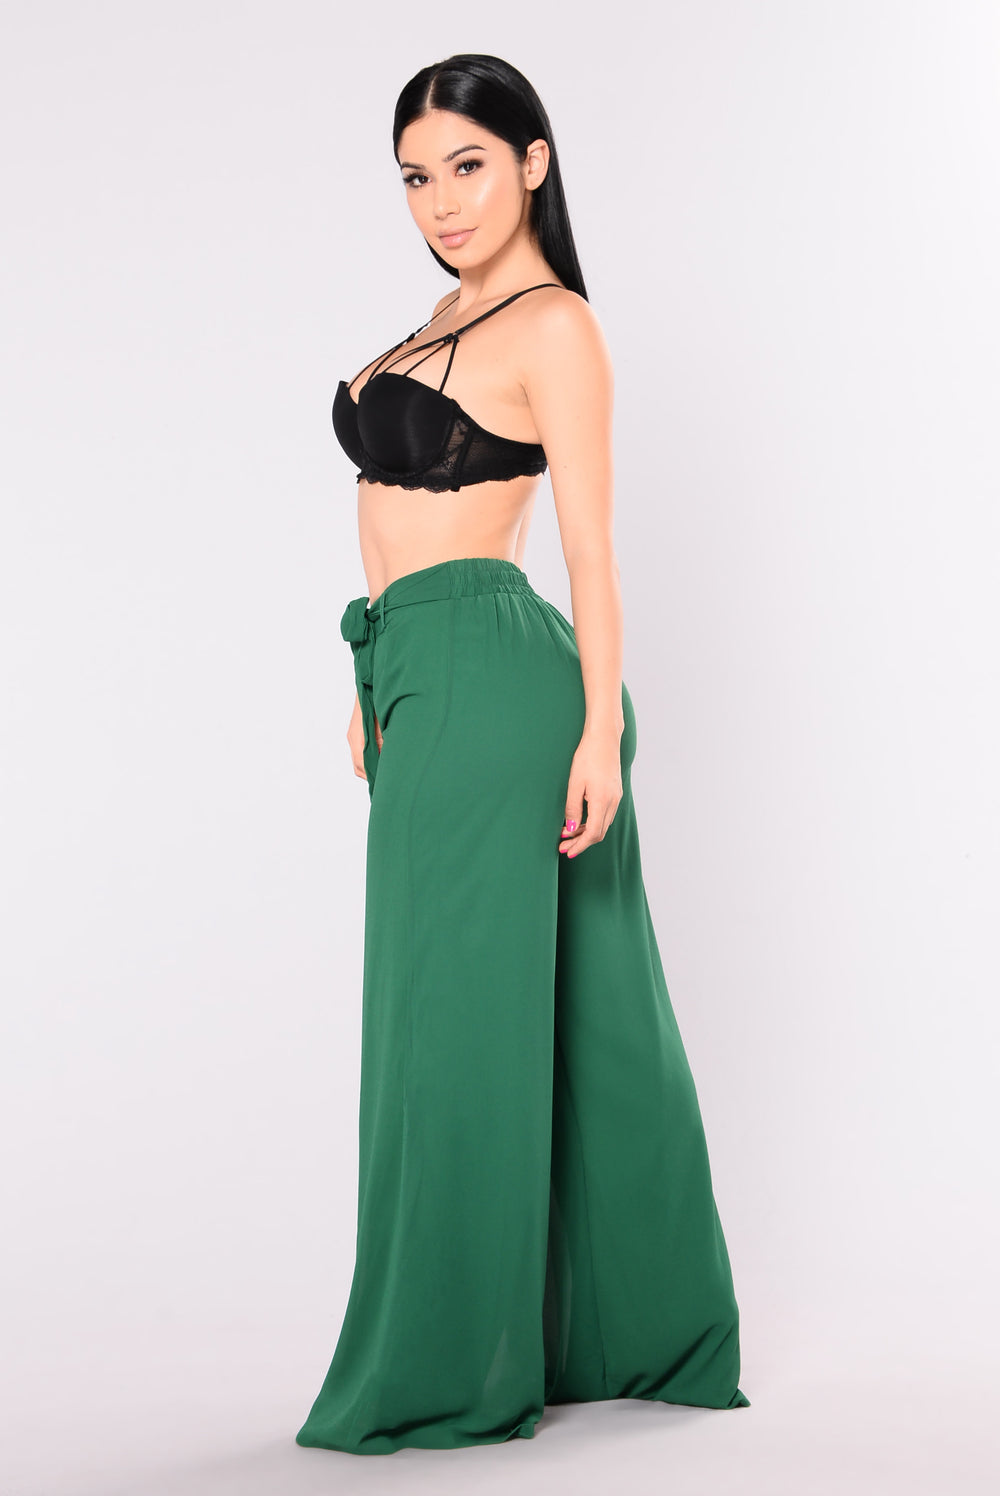 Di Amore Pants - Hunter Green